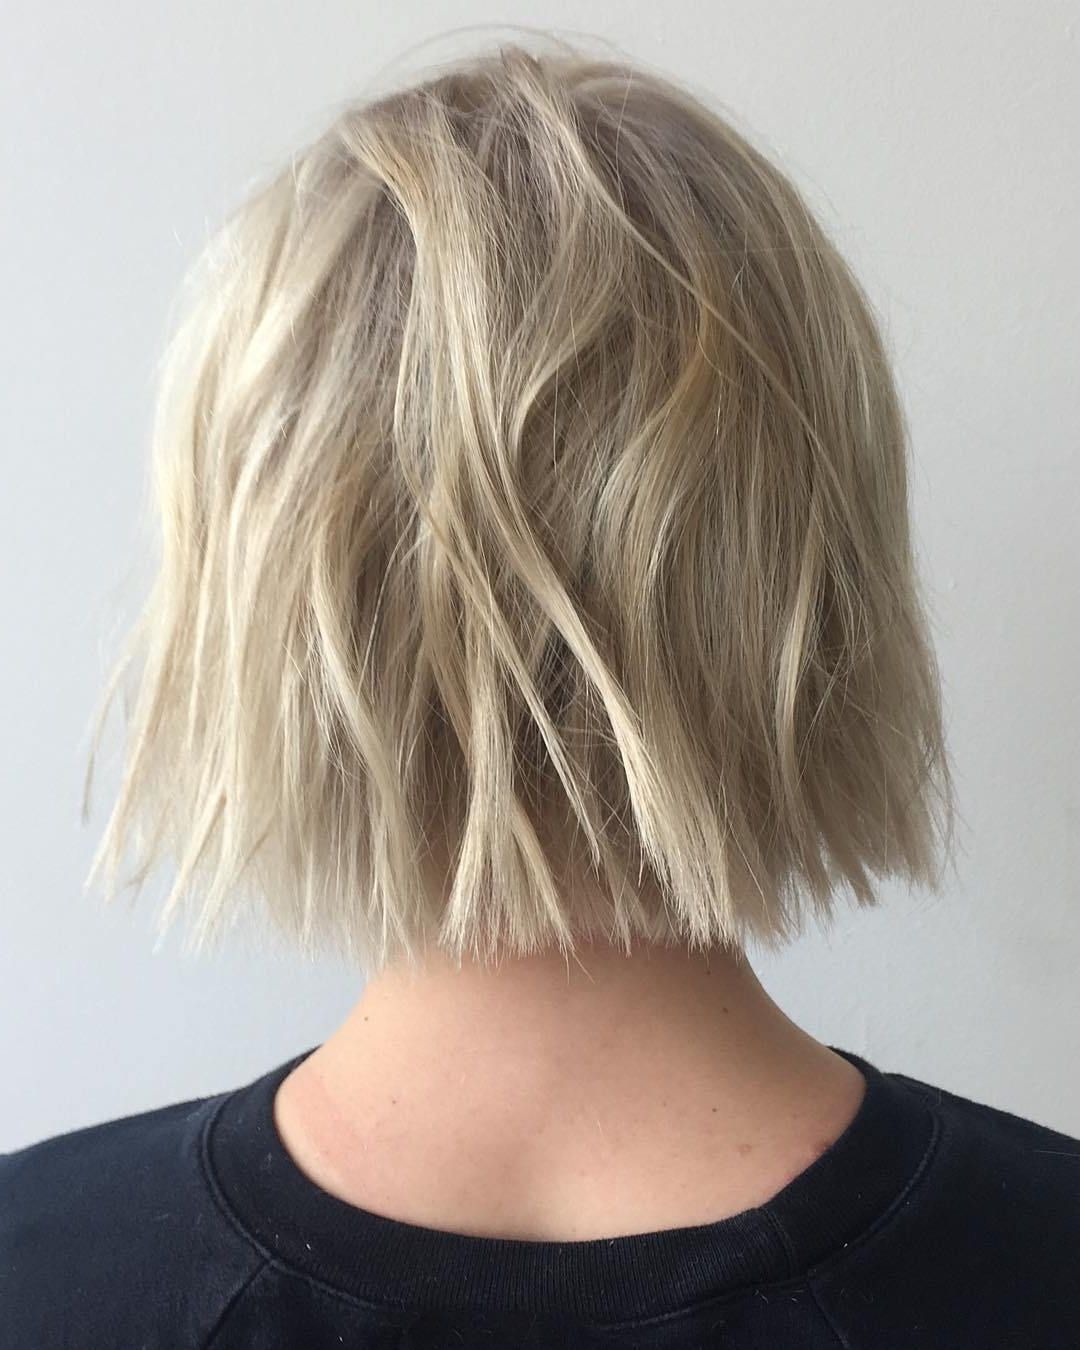 Fashionable Messy Razored Golden Blonde Bob Haircuts In 50 Choppy Bobs Too Damn Good Not To Copy – Hair Adviser (Gallery 7 of 20)